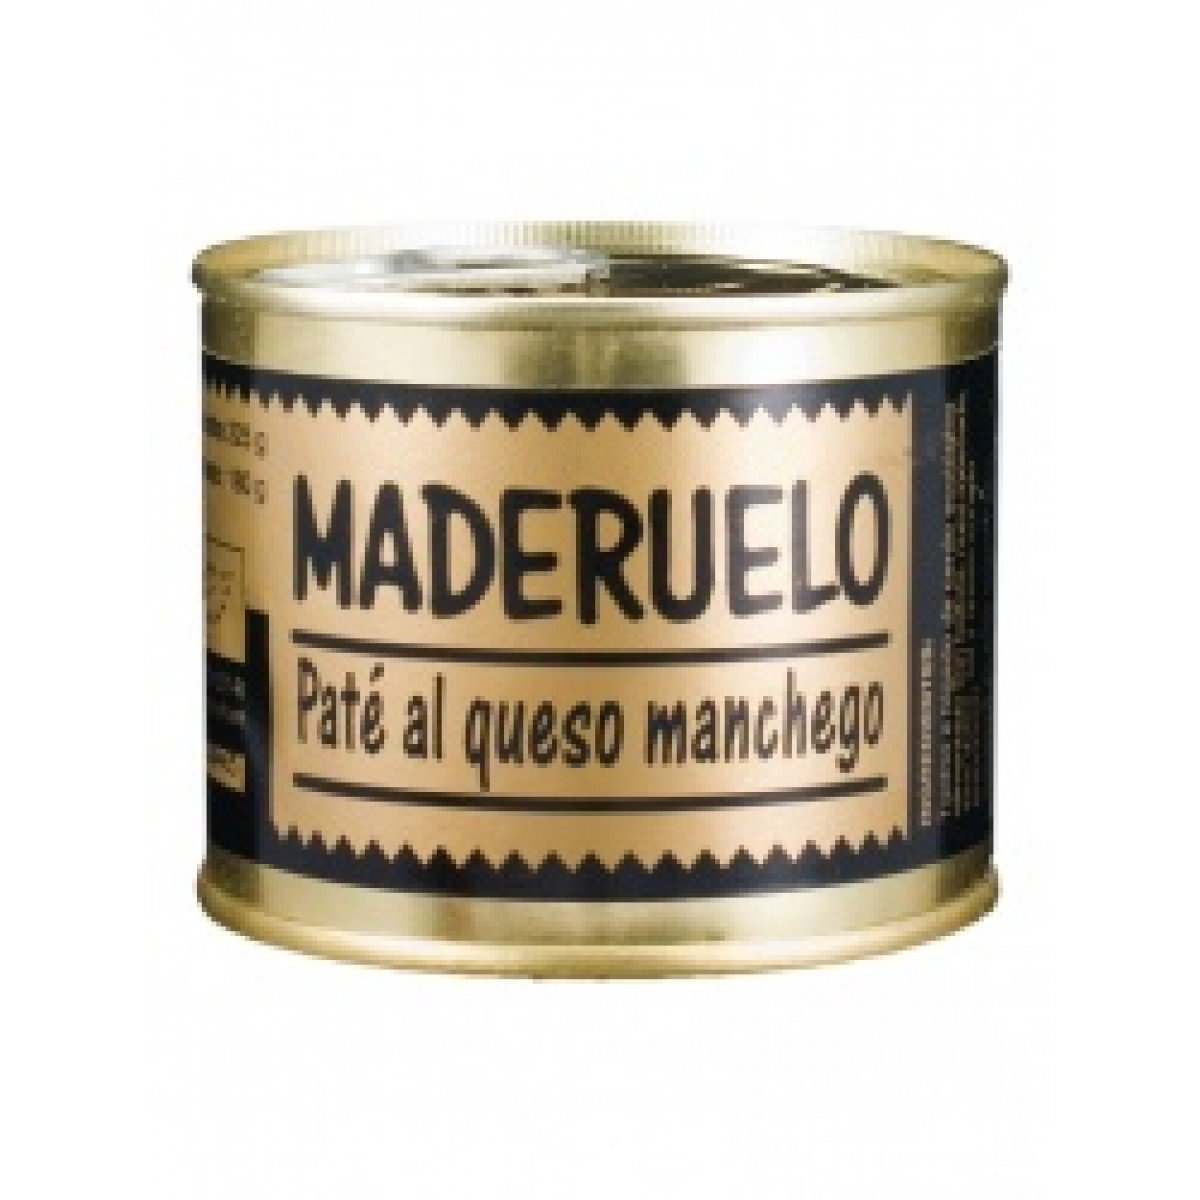 /ficheros/productos/pate queso manchego luis gil.jpg